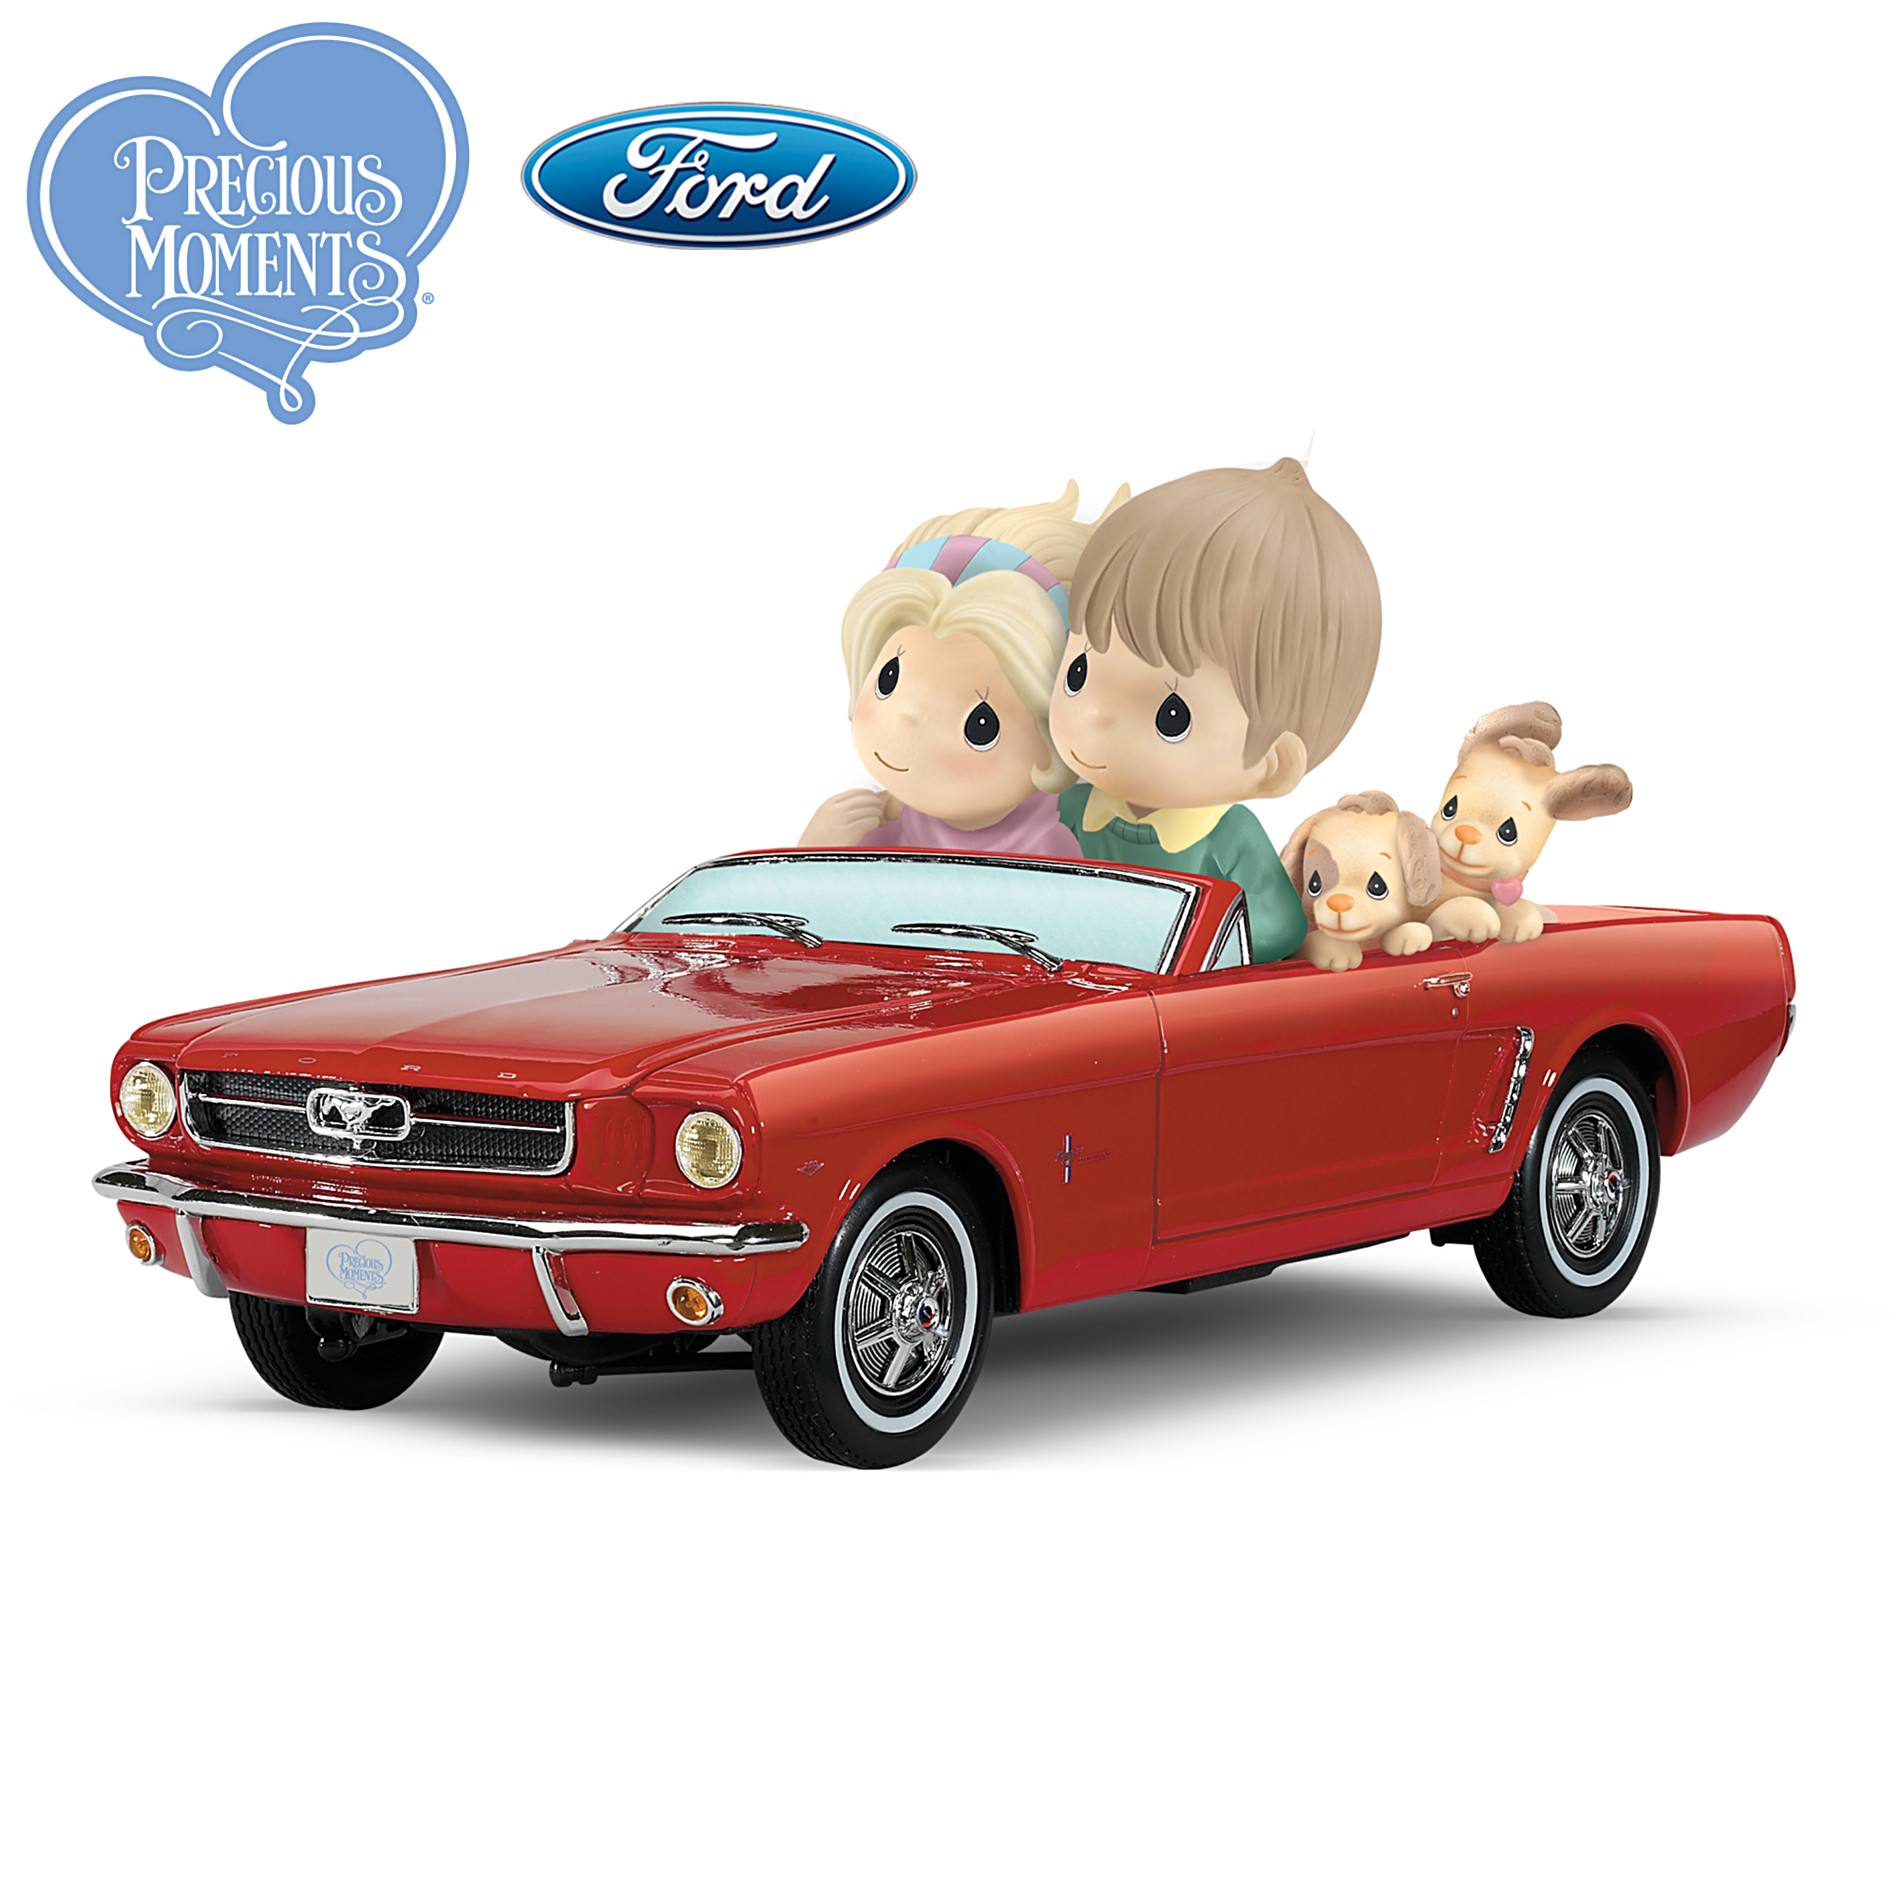 The Hamilton Collection Precious Moments 1964 1/2 Ford Mustang Figurine: Just Me And You With The Horizon In View at Sears.com